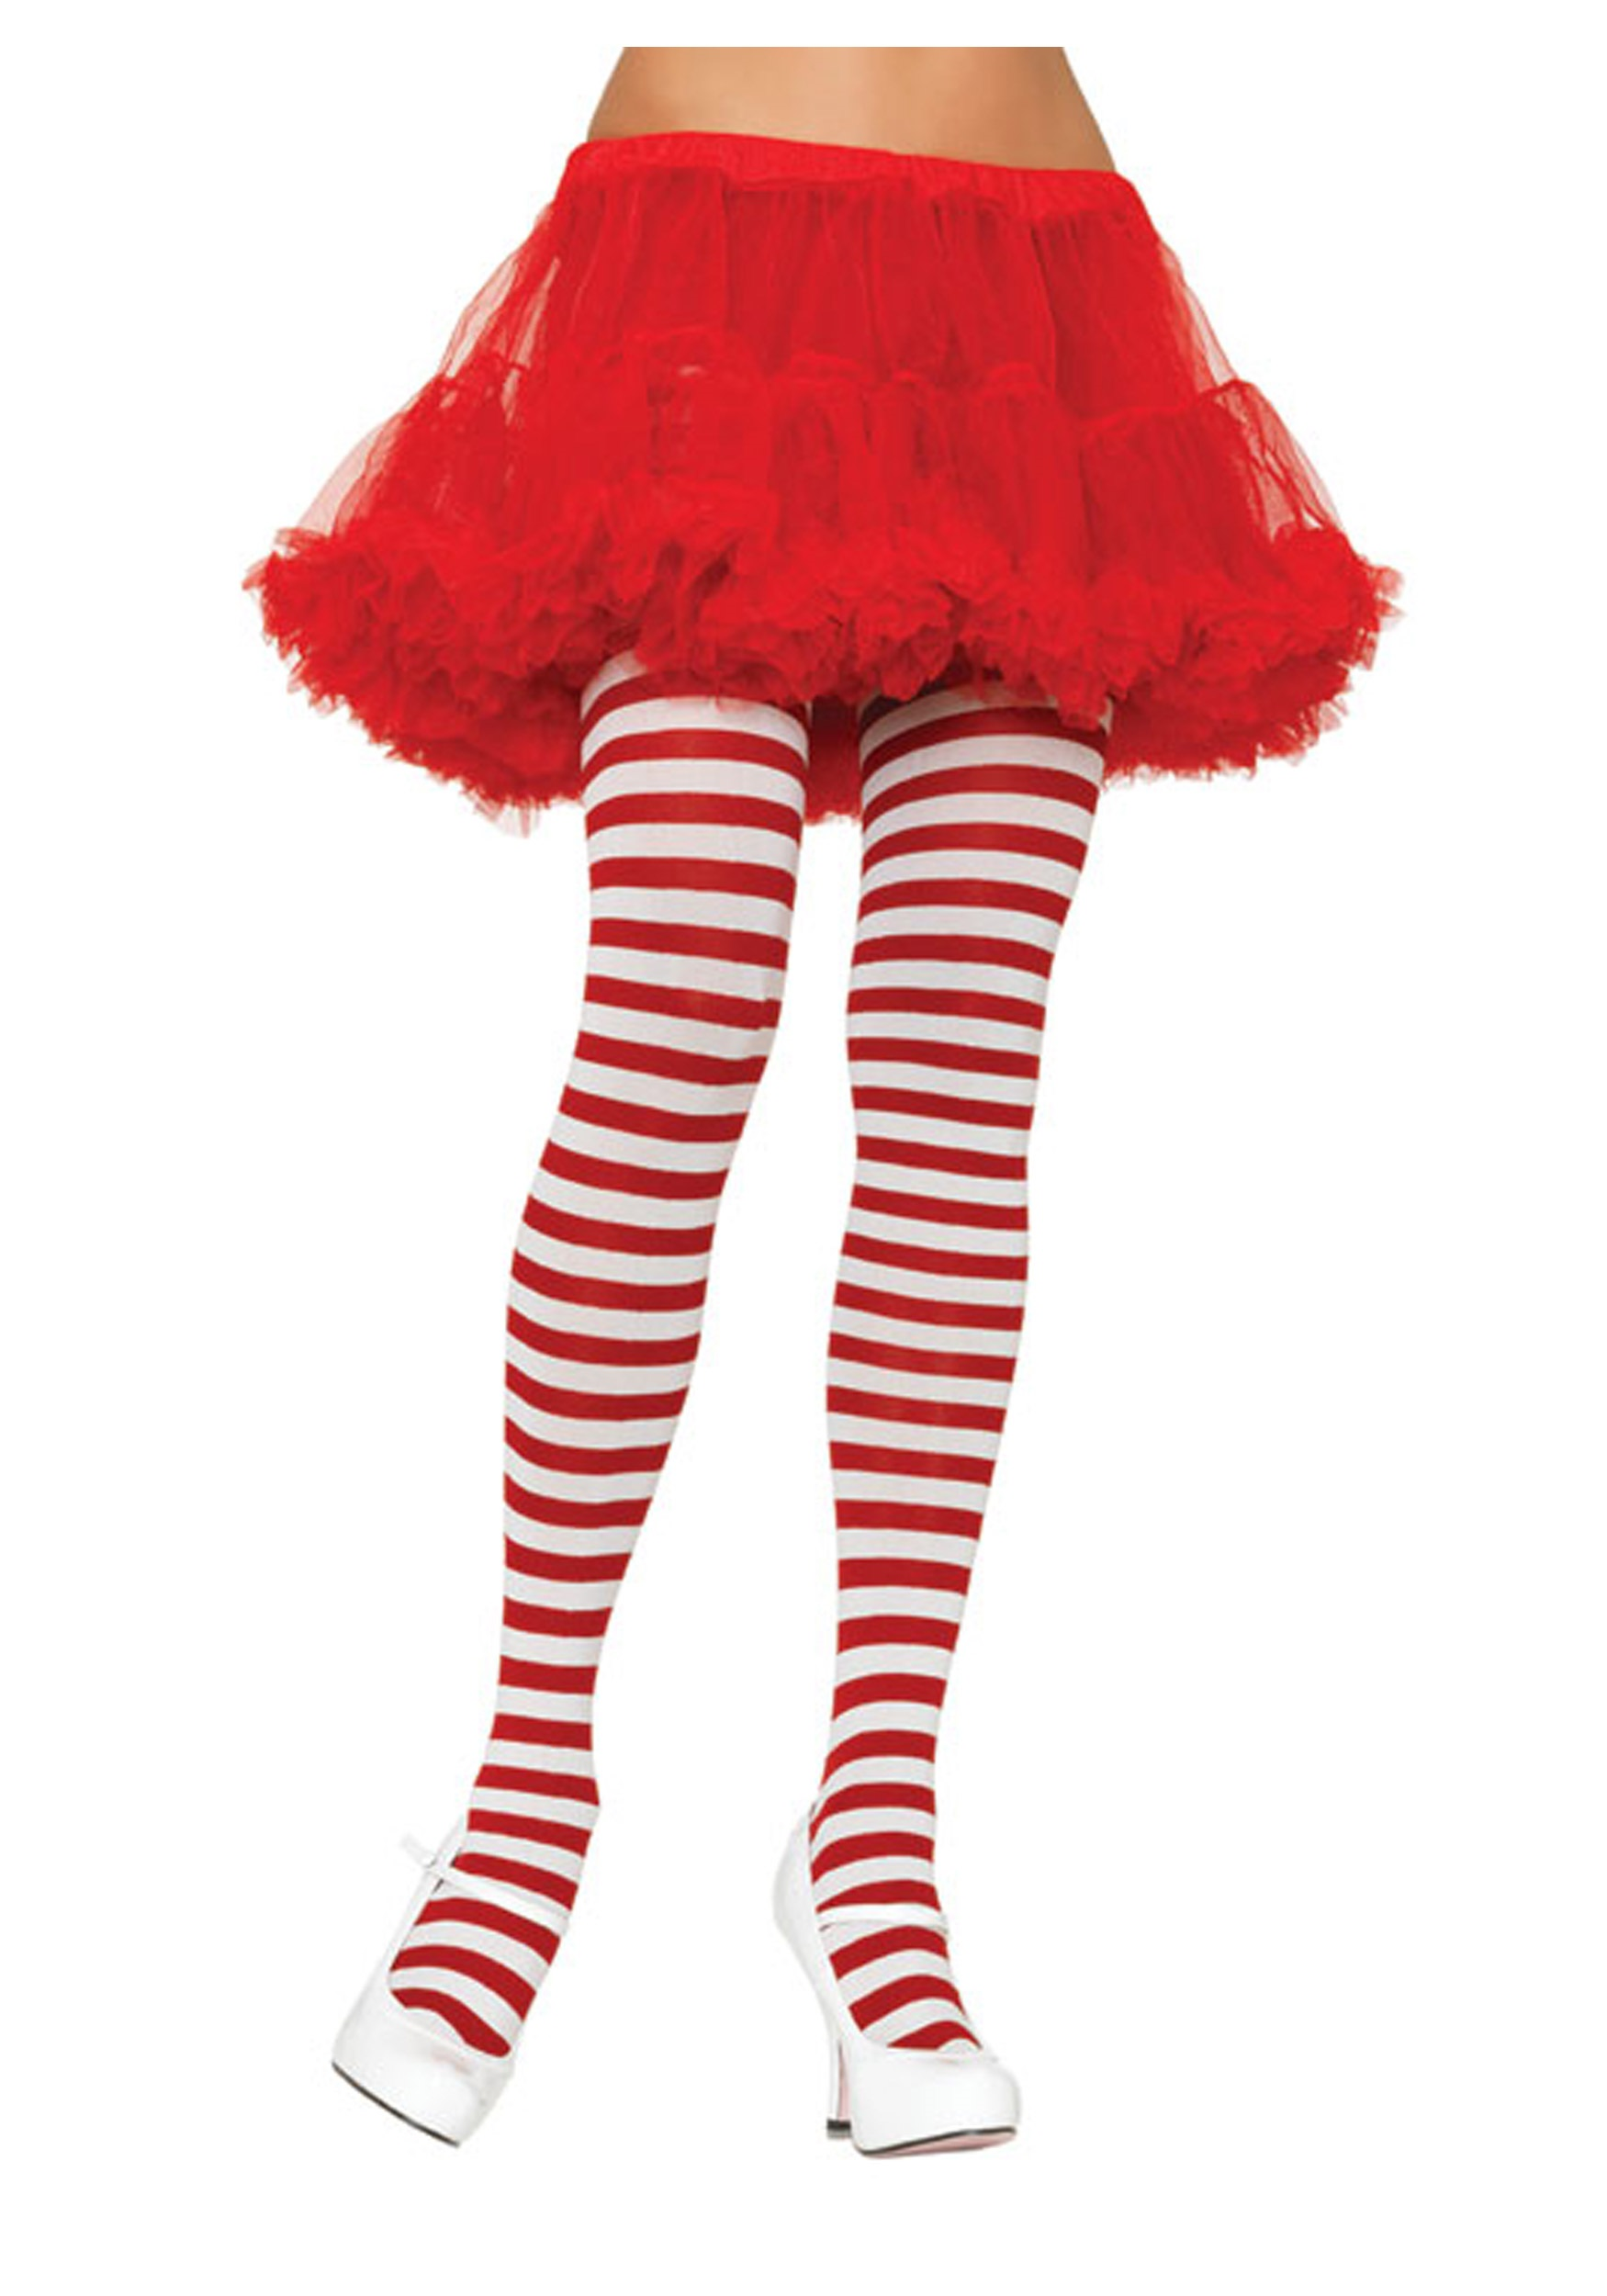 plus size white red striped tights